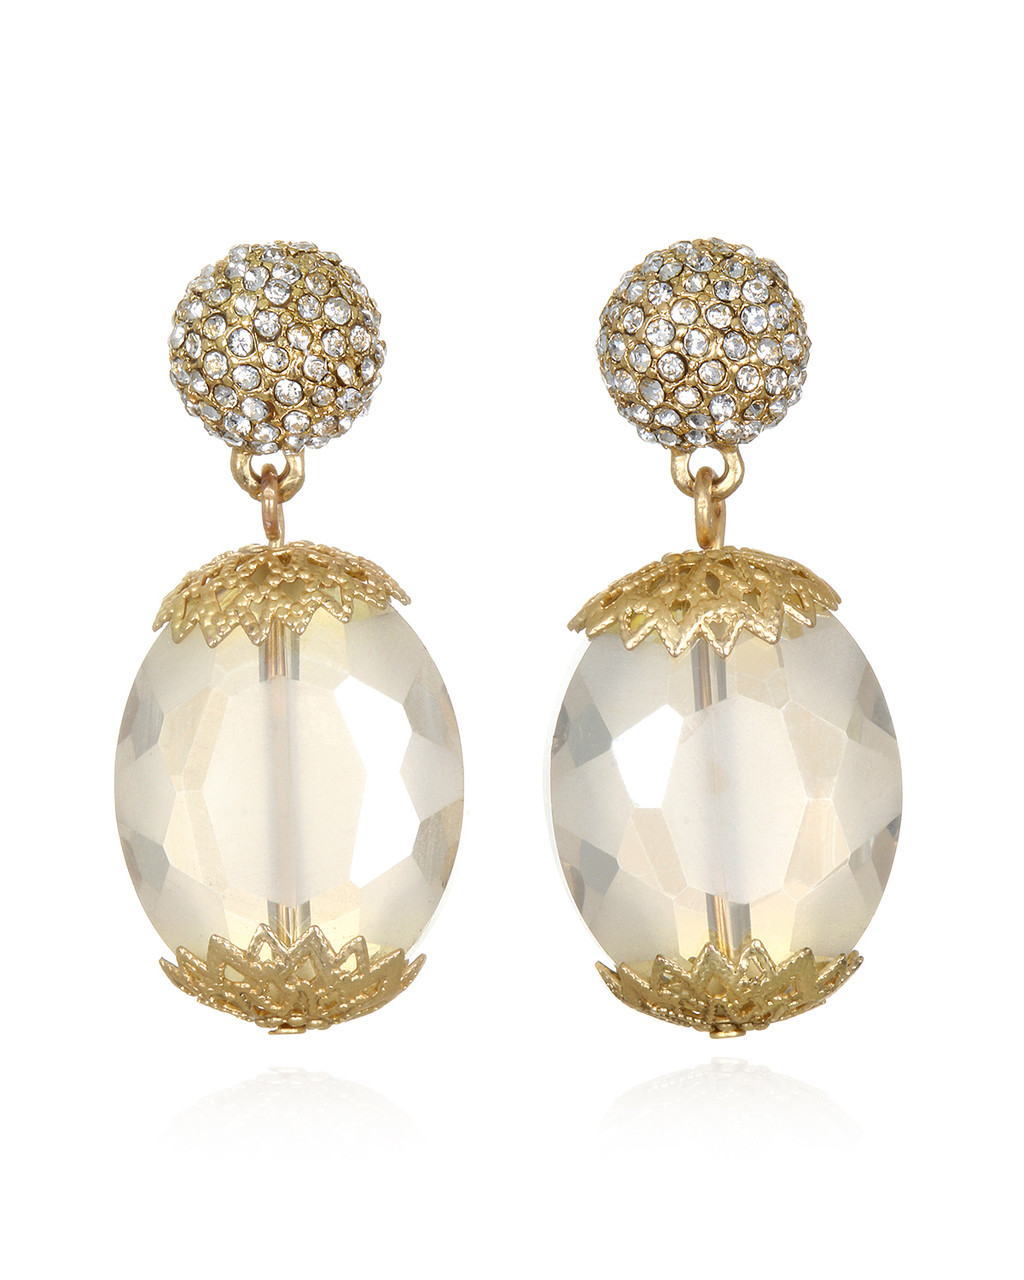 1be3b8229a211 Faceted Crystal Oval Bead Drop Earrings